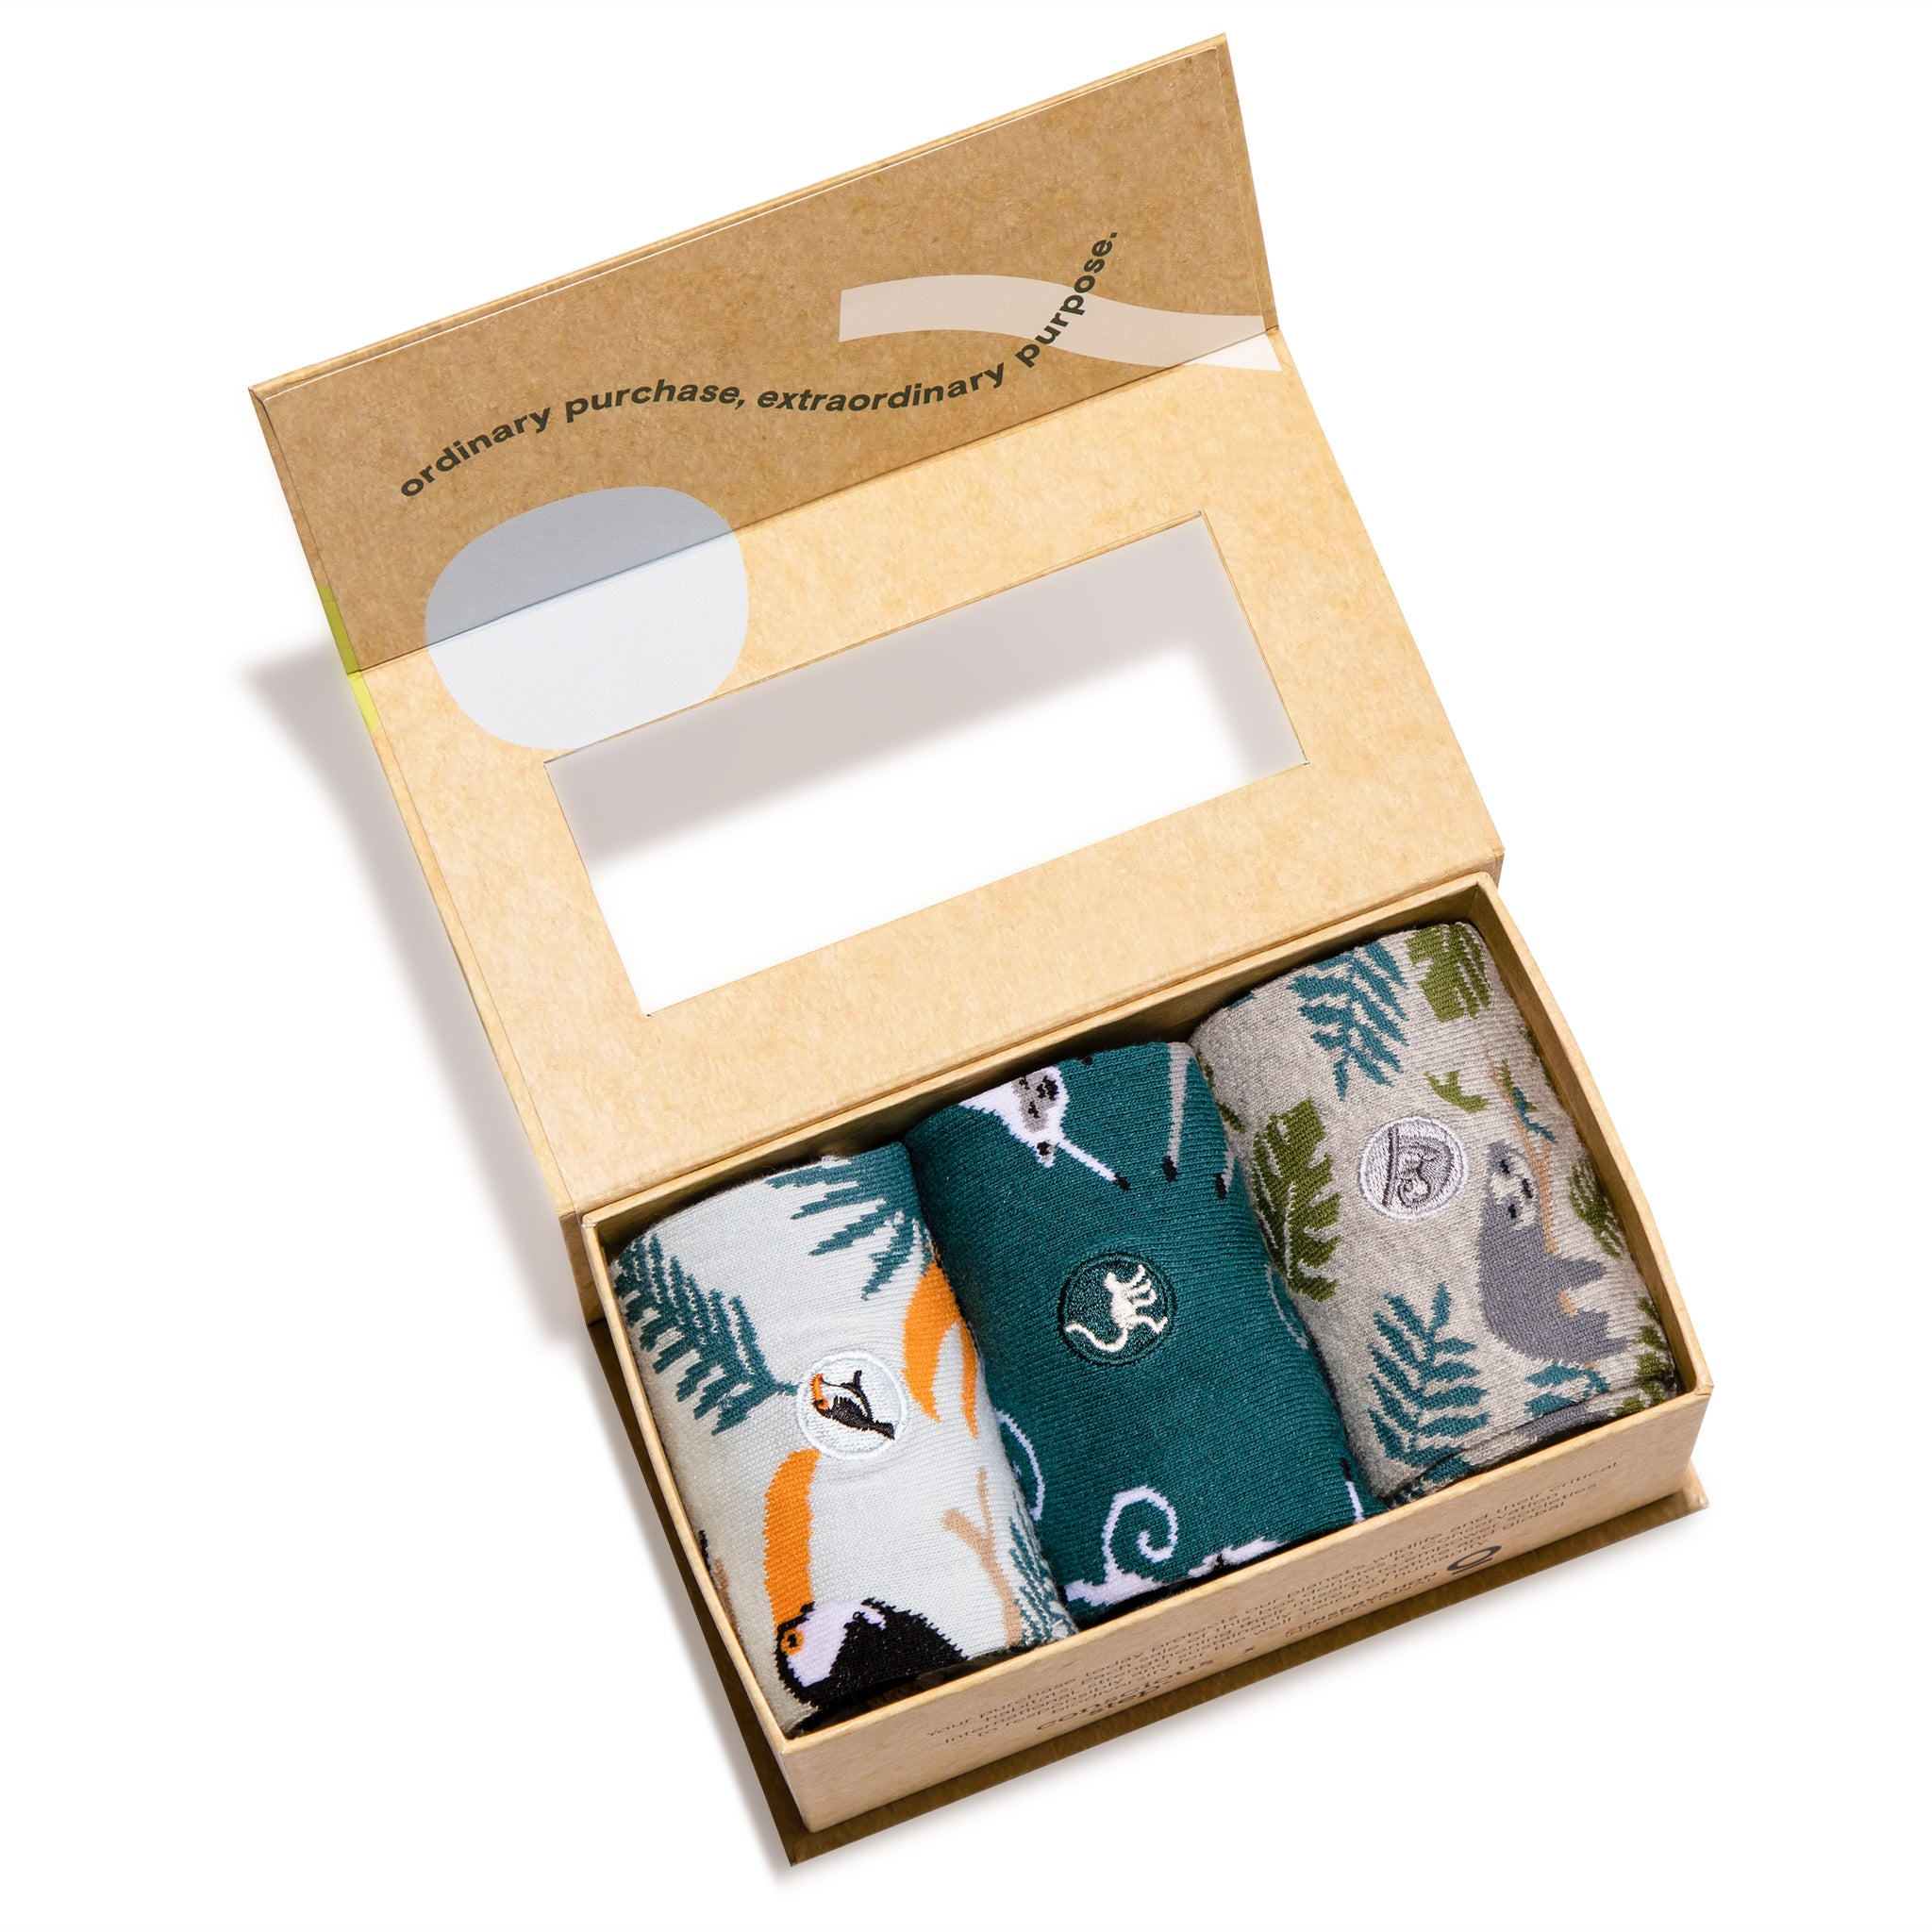 Protect Rainforests Gift Box